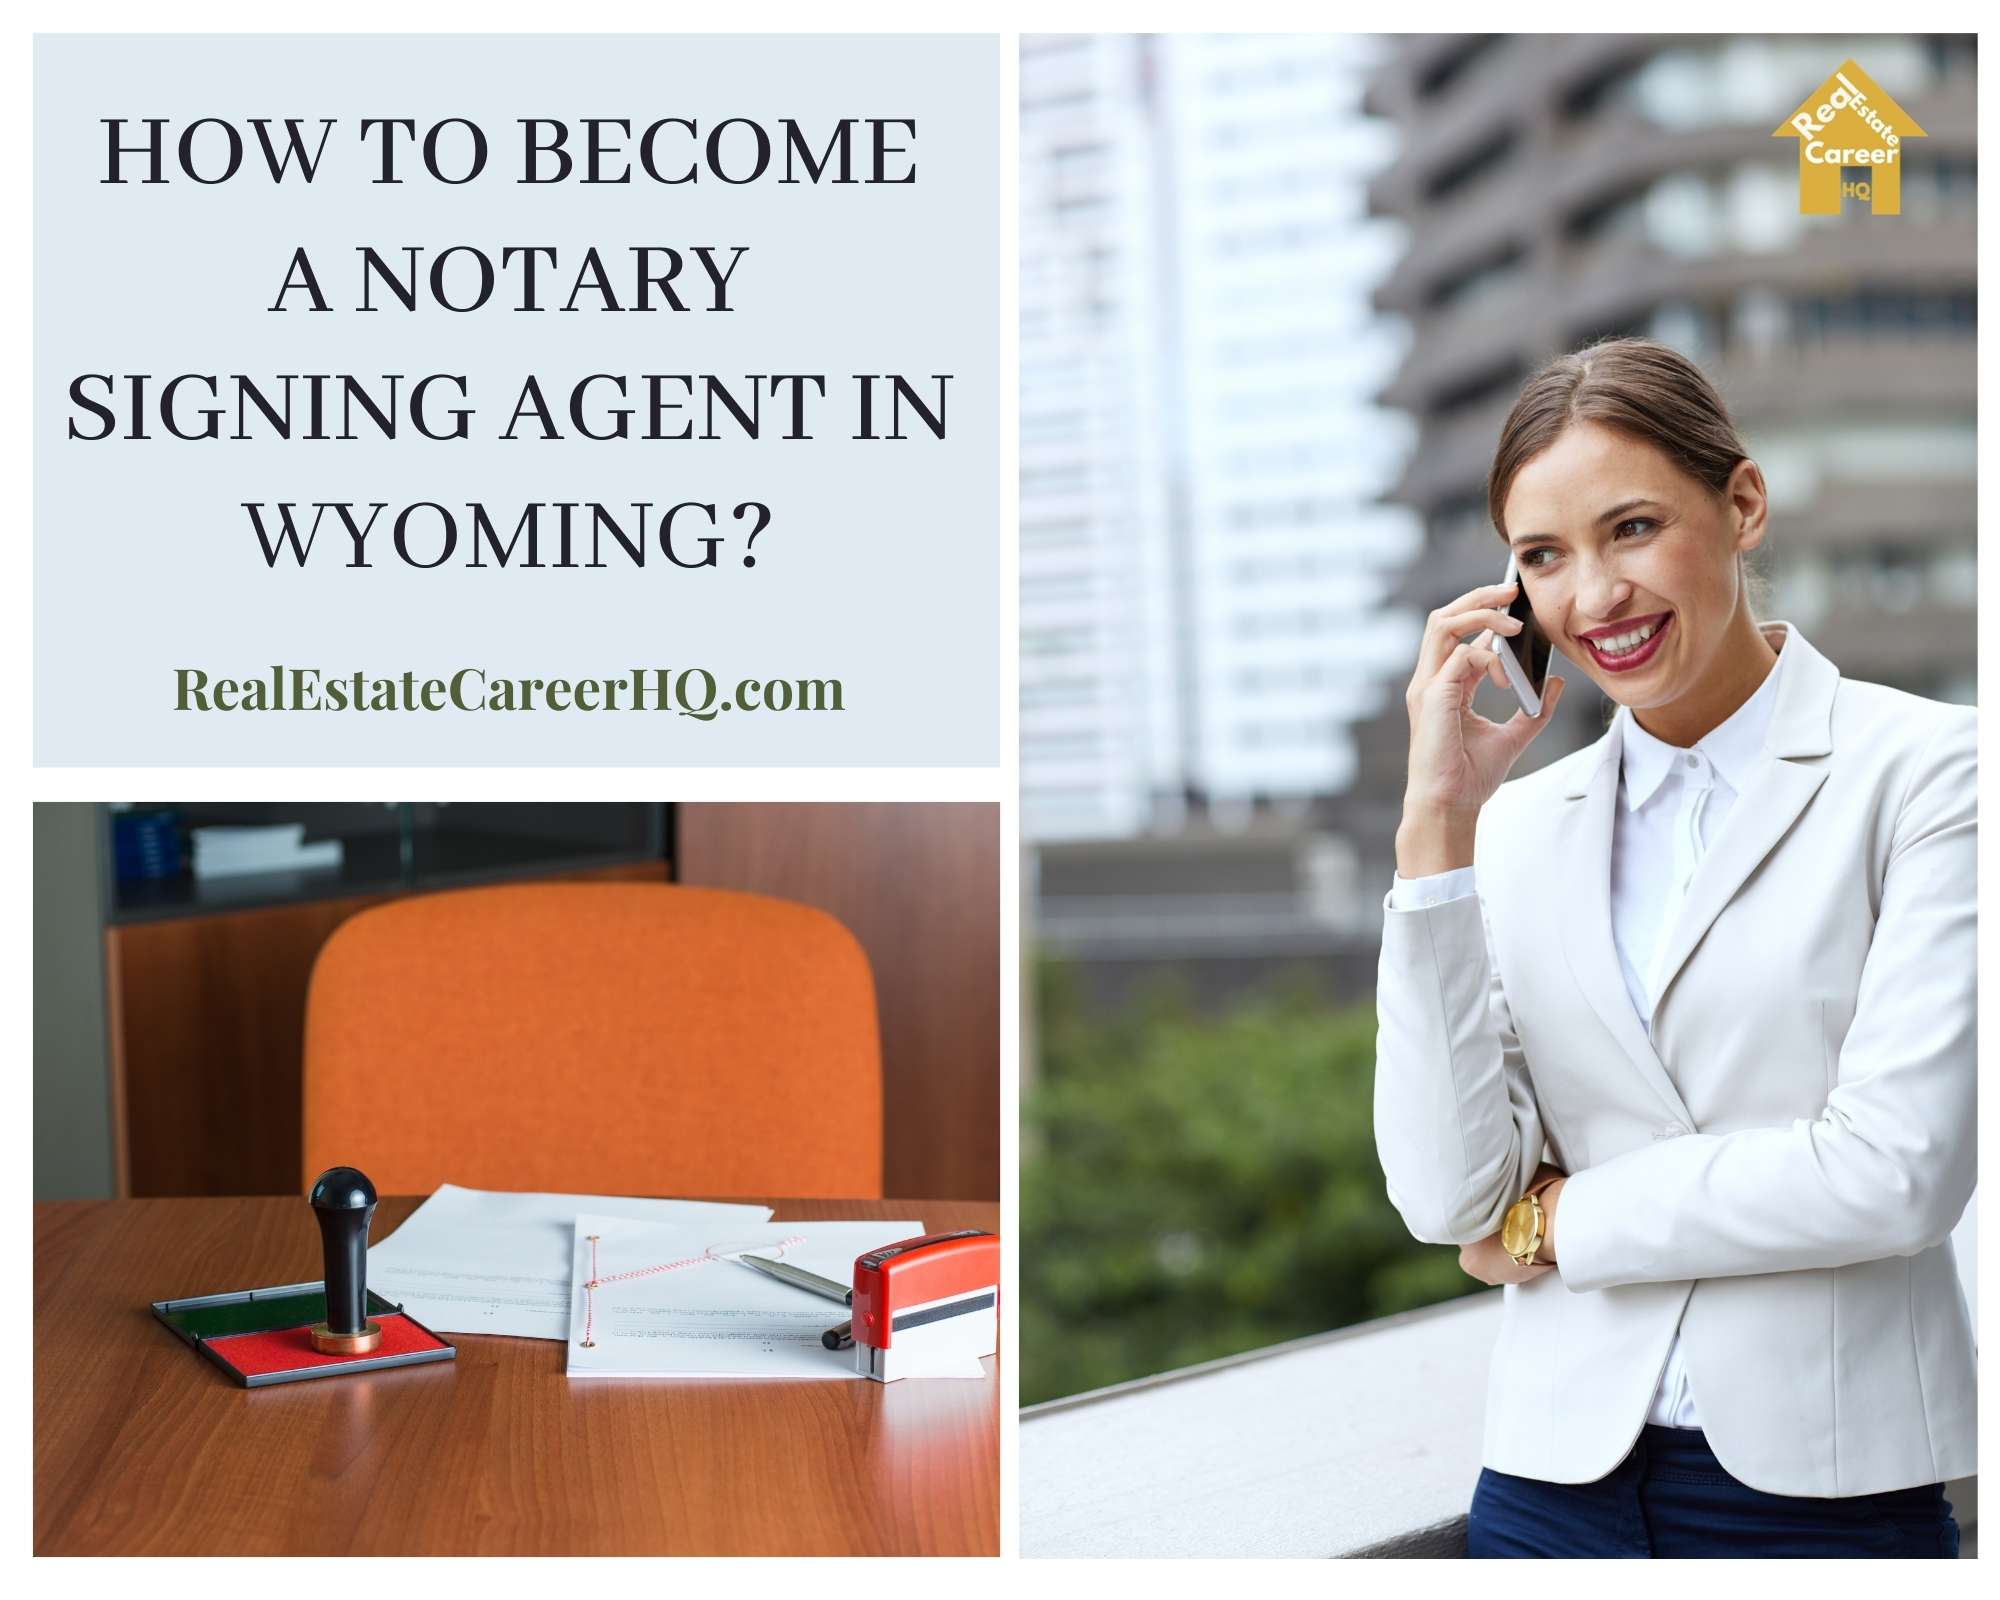 How to Become a Notary Signing Agent in Wyoming